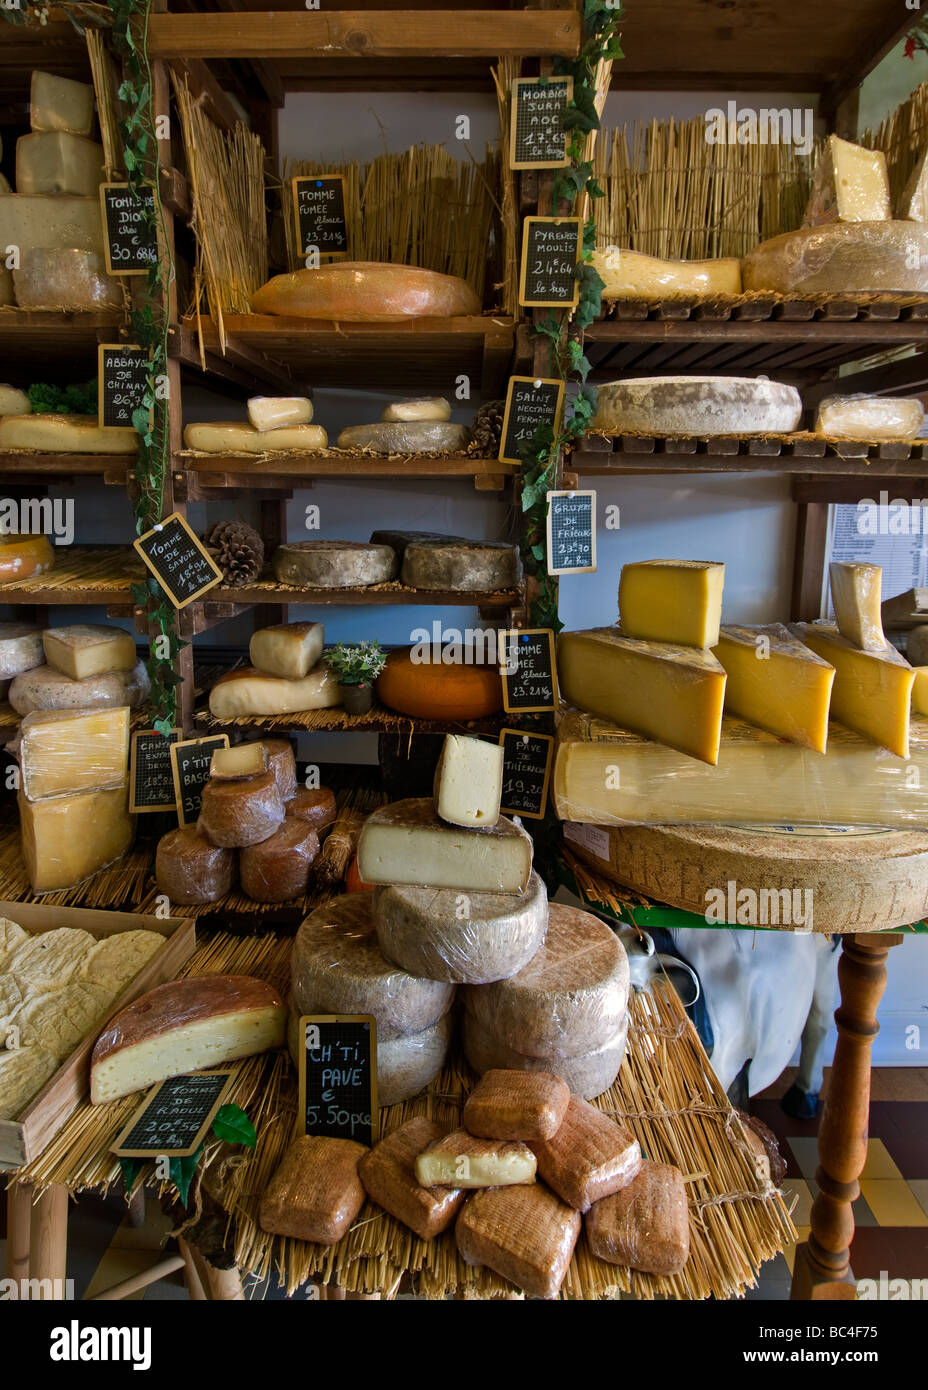 Selection of handmade cheeses on display in the charming artisan fromagerie cheese shop 'Caseus' Montreuil - Stock Image